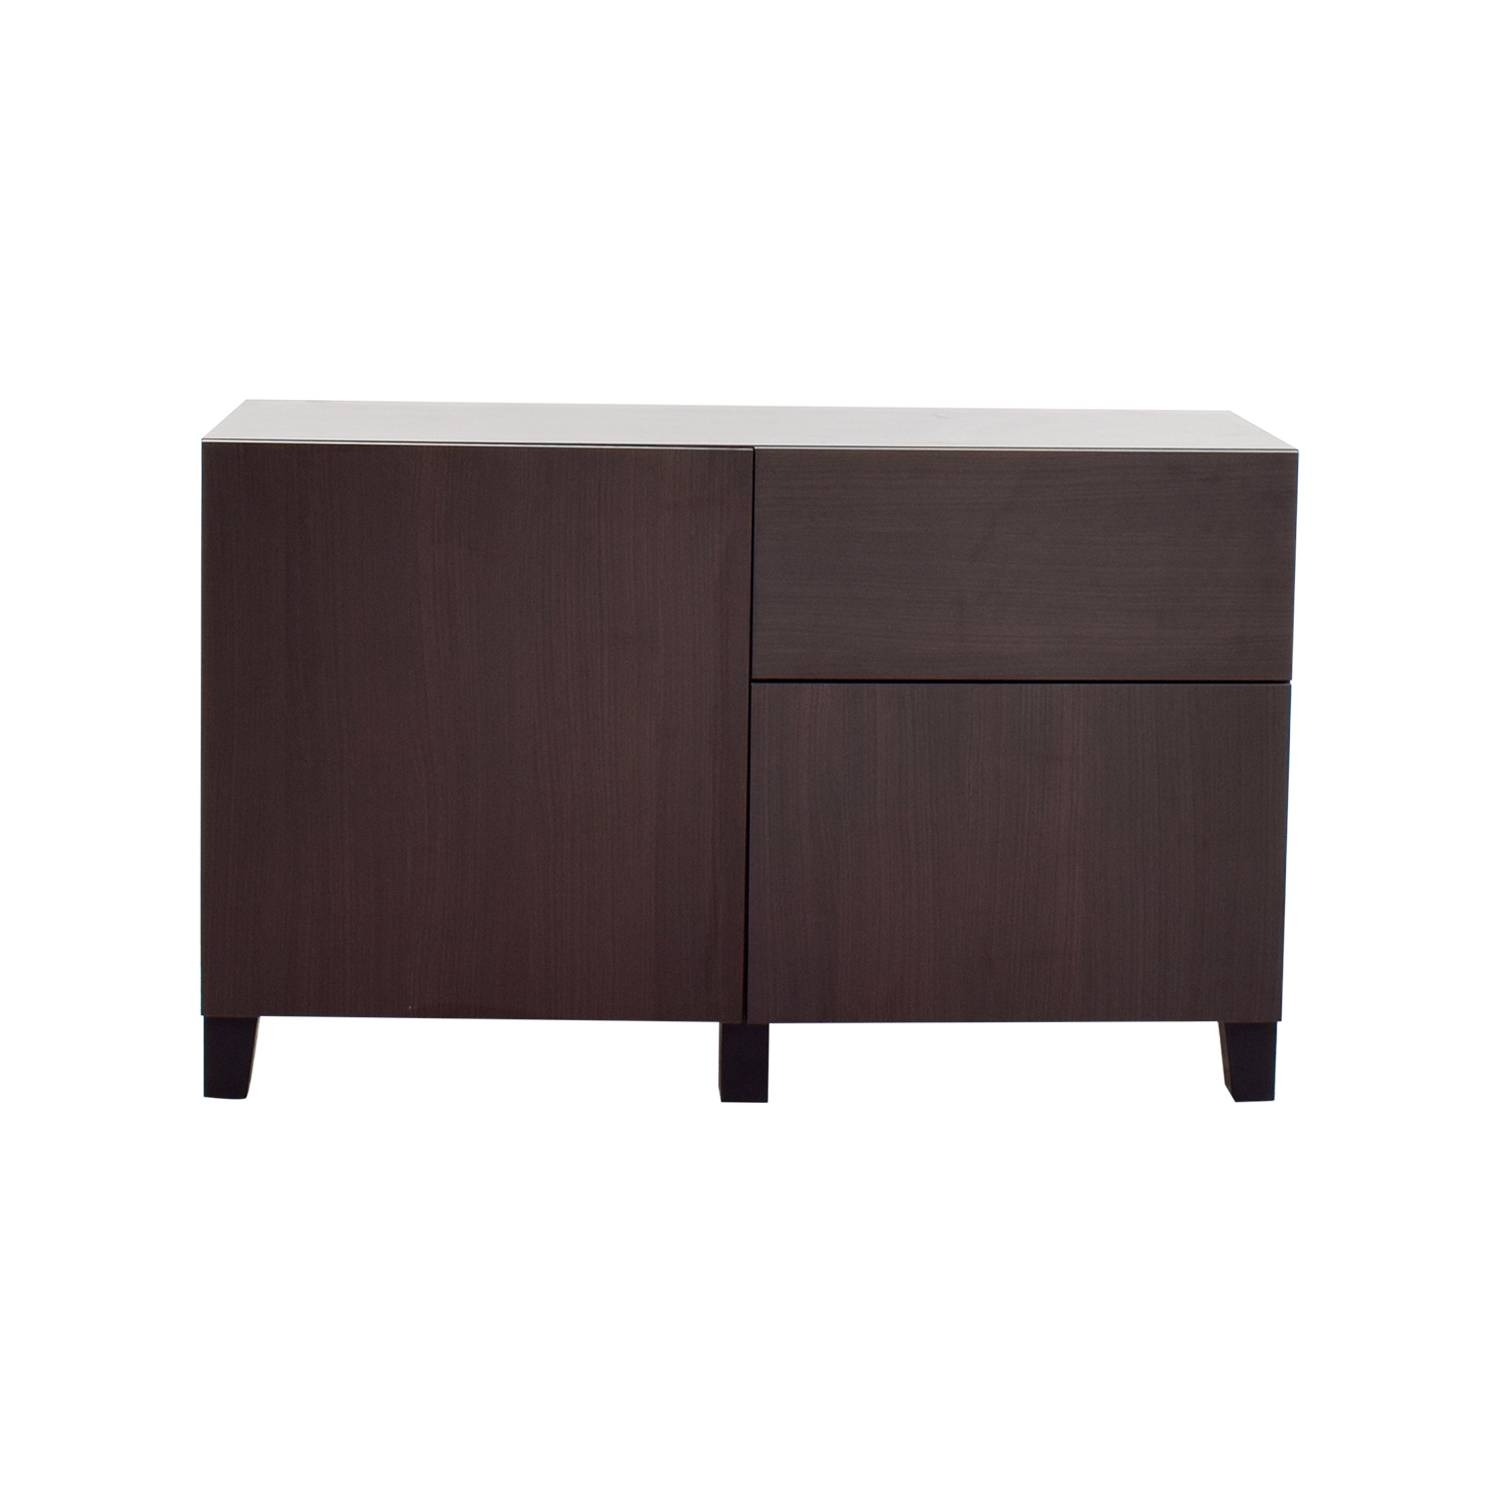 66% Off – Ikea Ikea Dark Brown Storage Sideboard / Storage With Regard To Ikea Sideboards (View 1 of 15)